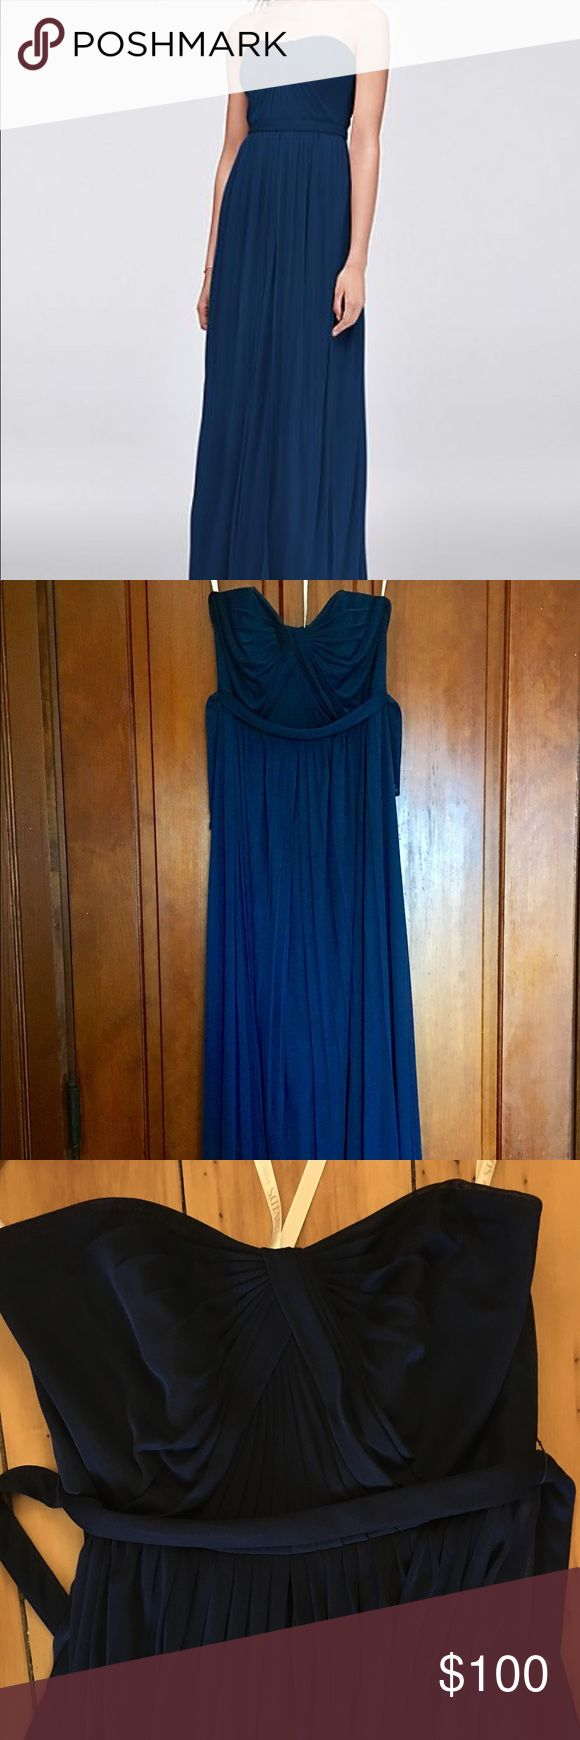 The 25 best davids bridal versa dress ideas on pinterest davids davids bridal versa convertible bridesmaid dress marine color long bridesmaids dress that can be worn so many different ways ombrellifo Images